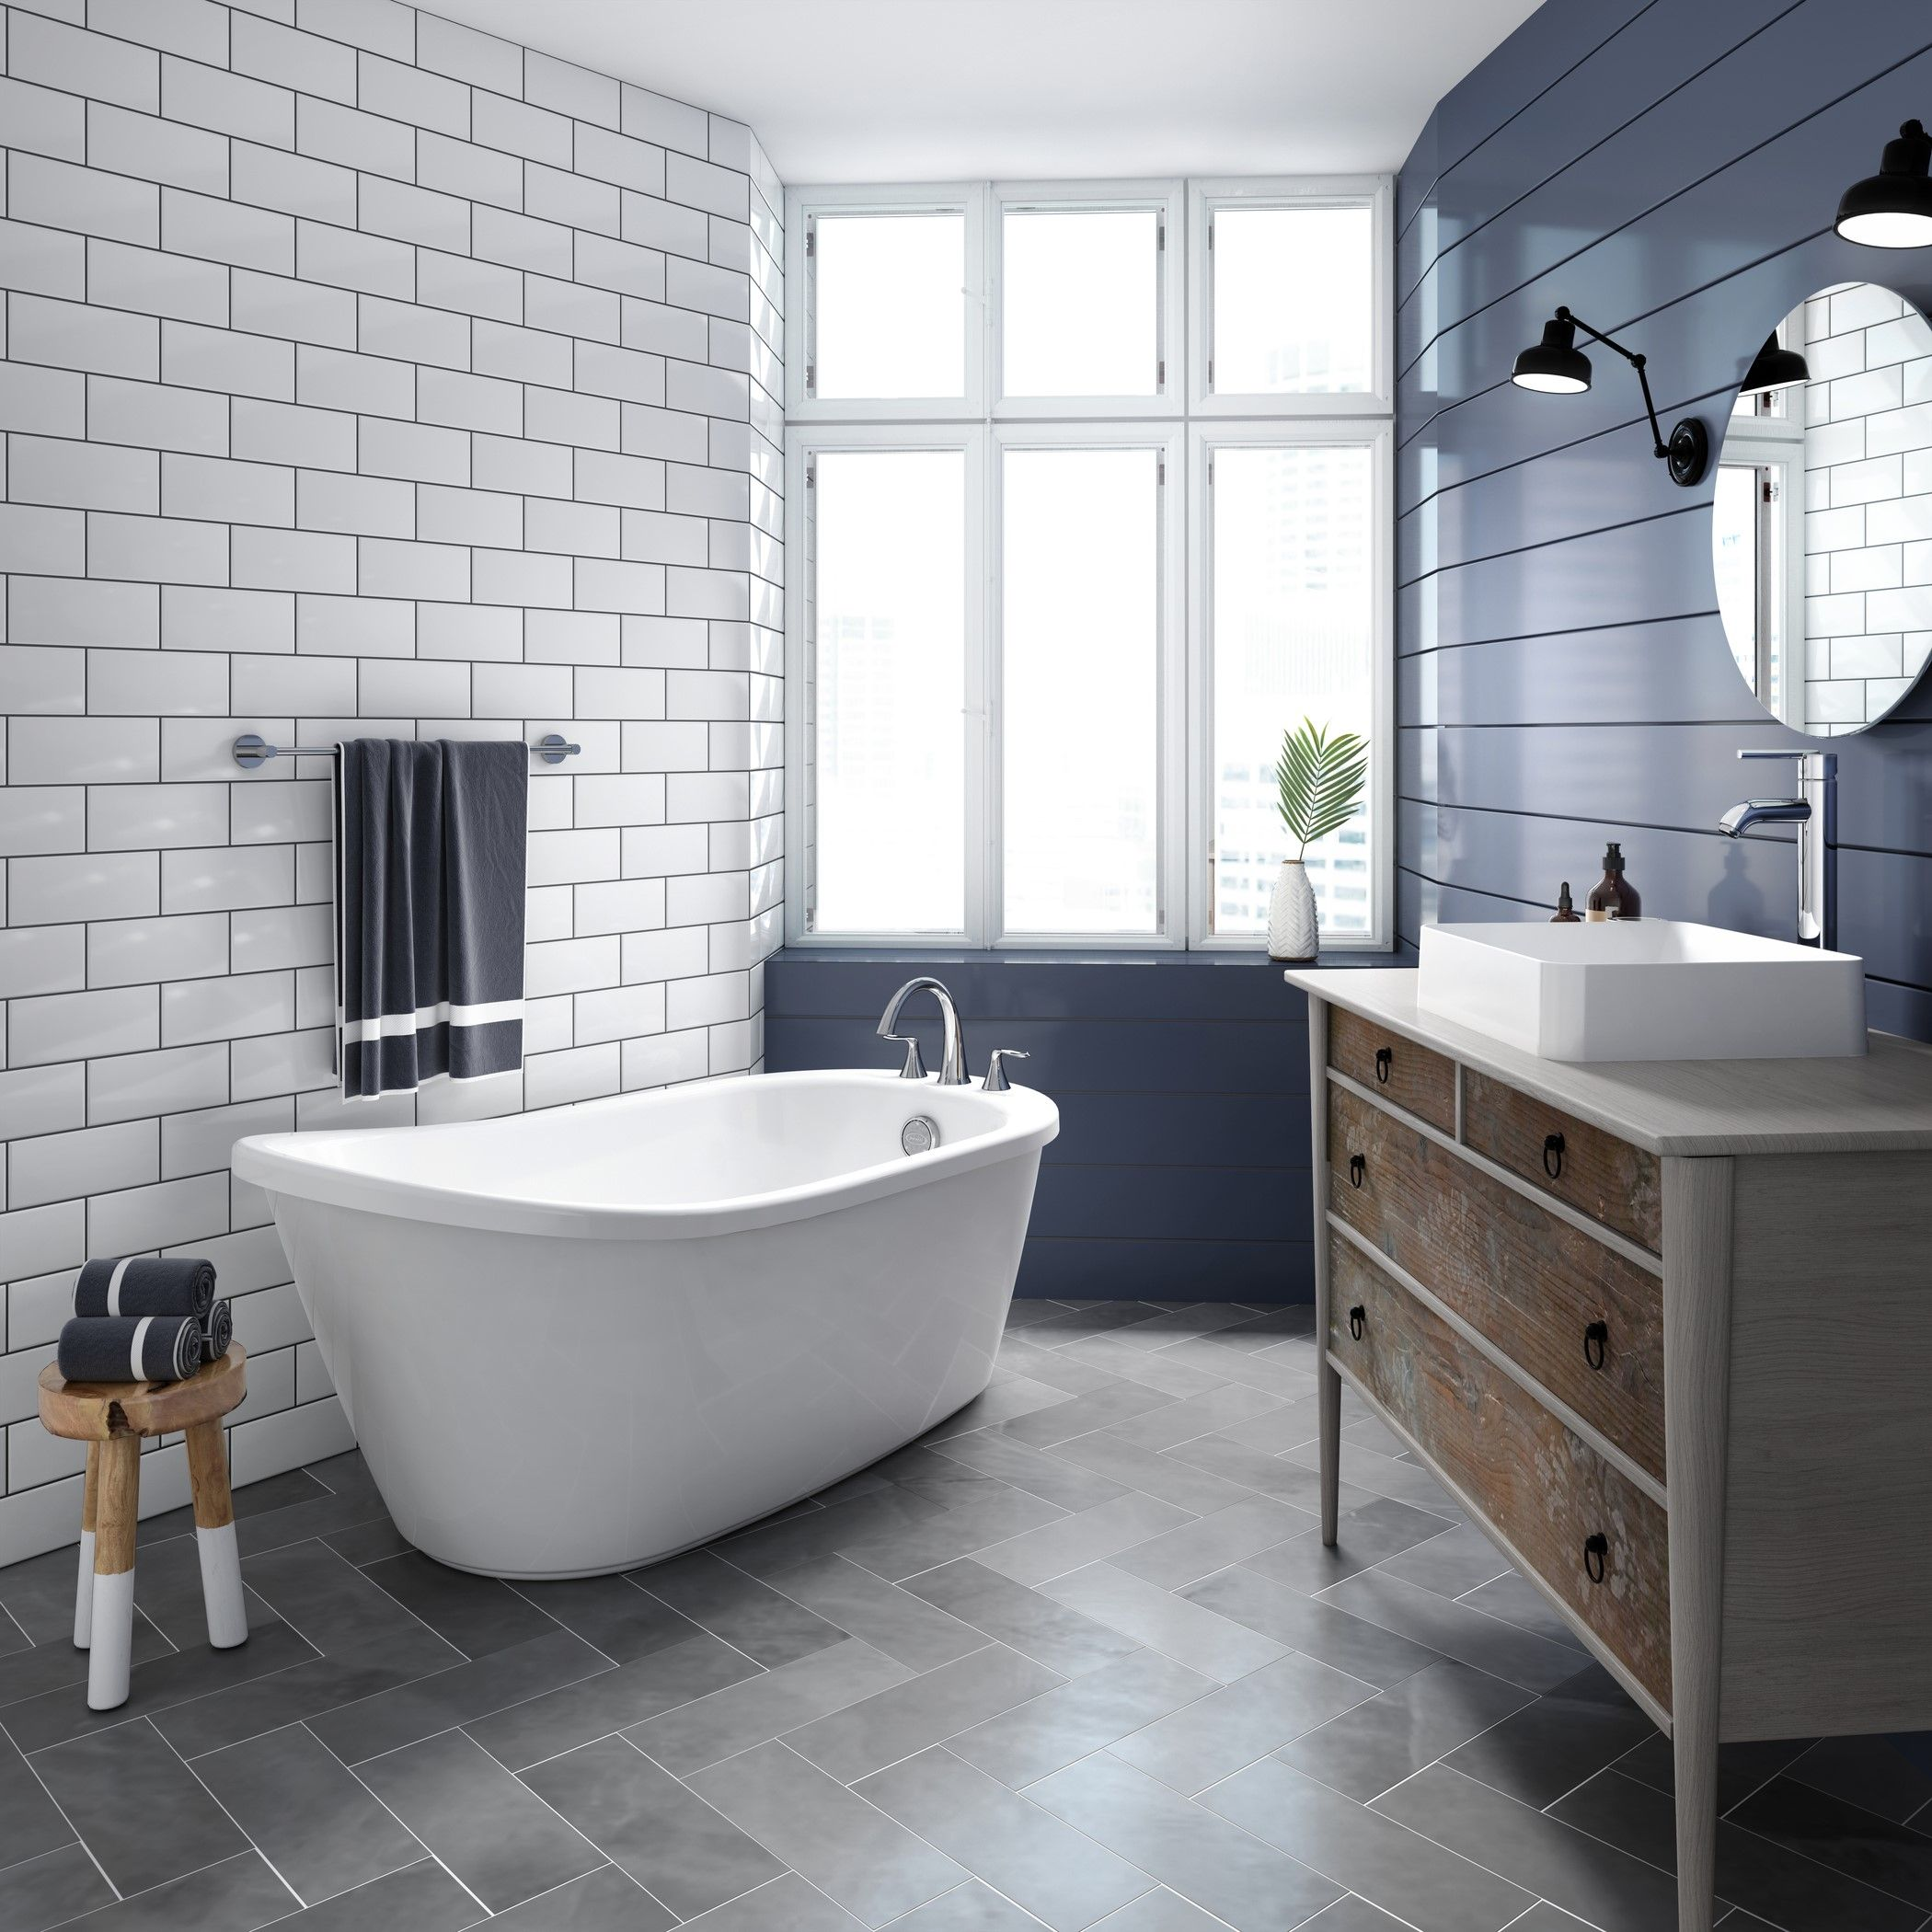 Piccolo Freestanding Bath Free Standing Bath Tub Master Bathroom Renovation Bathroom Design